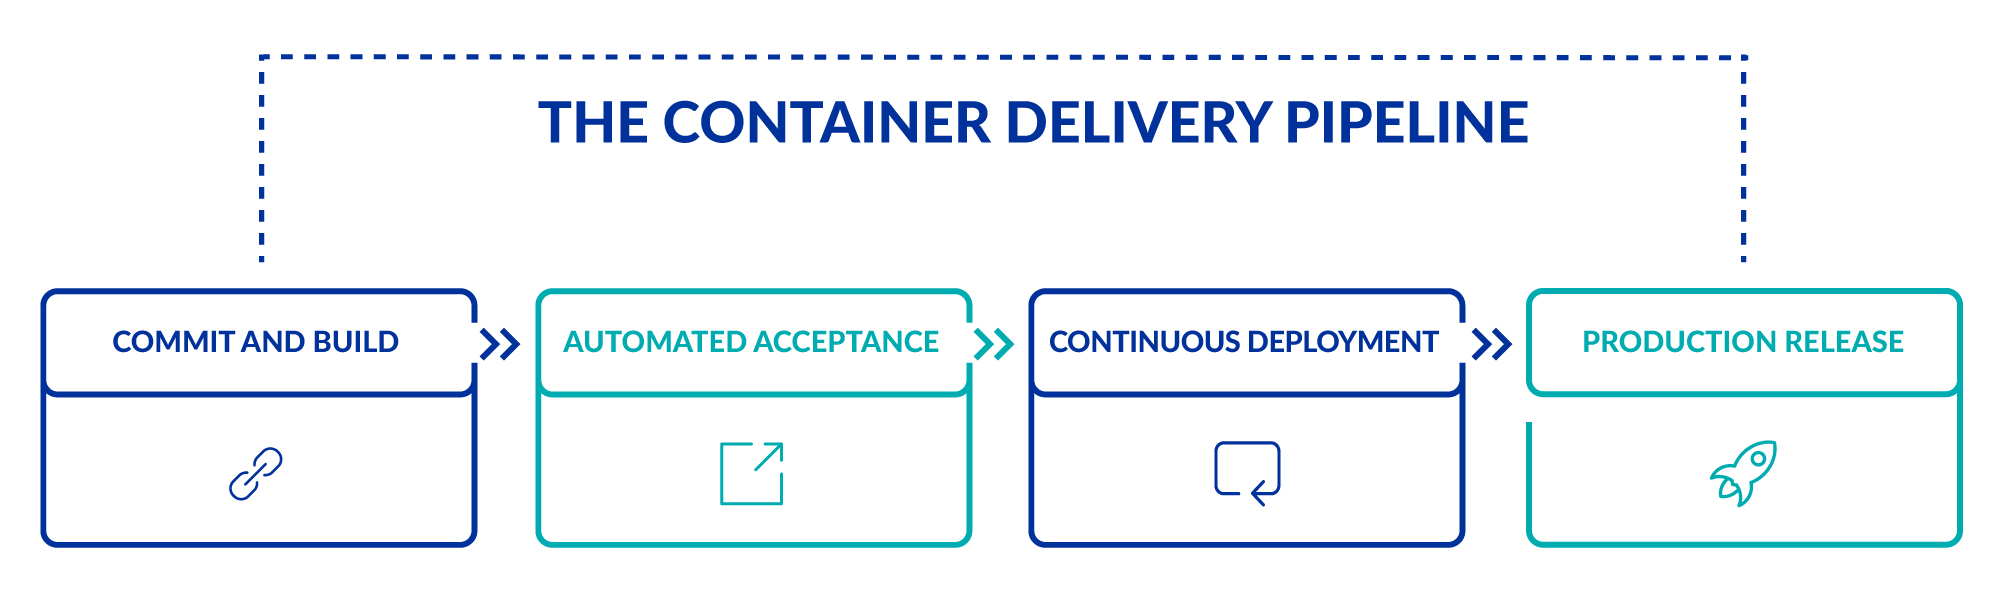 chart-Container-delivery-pipeline